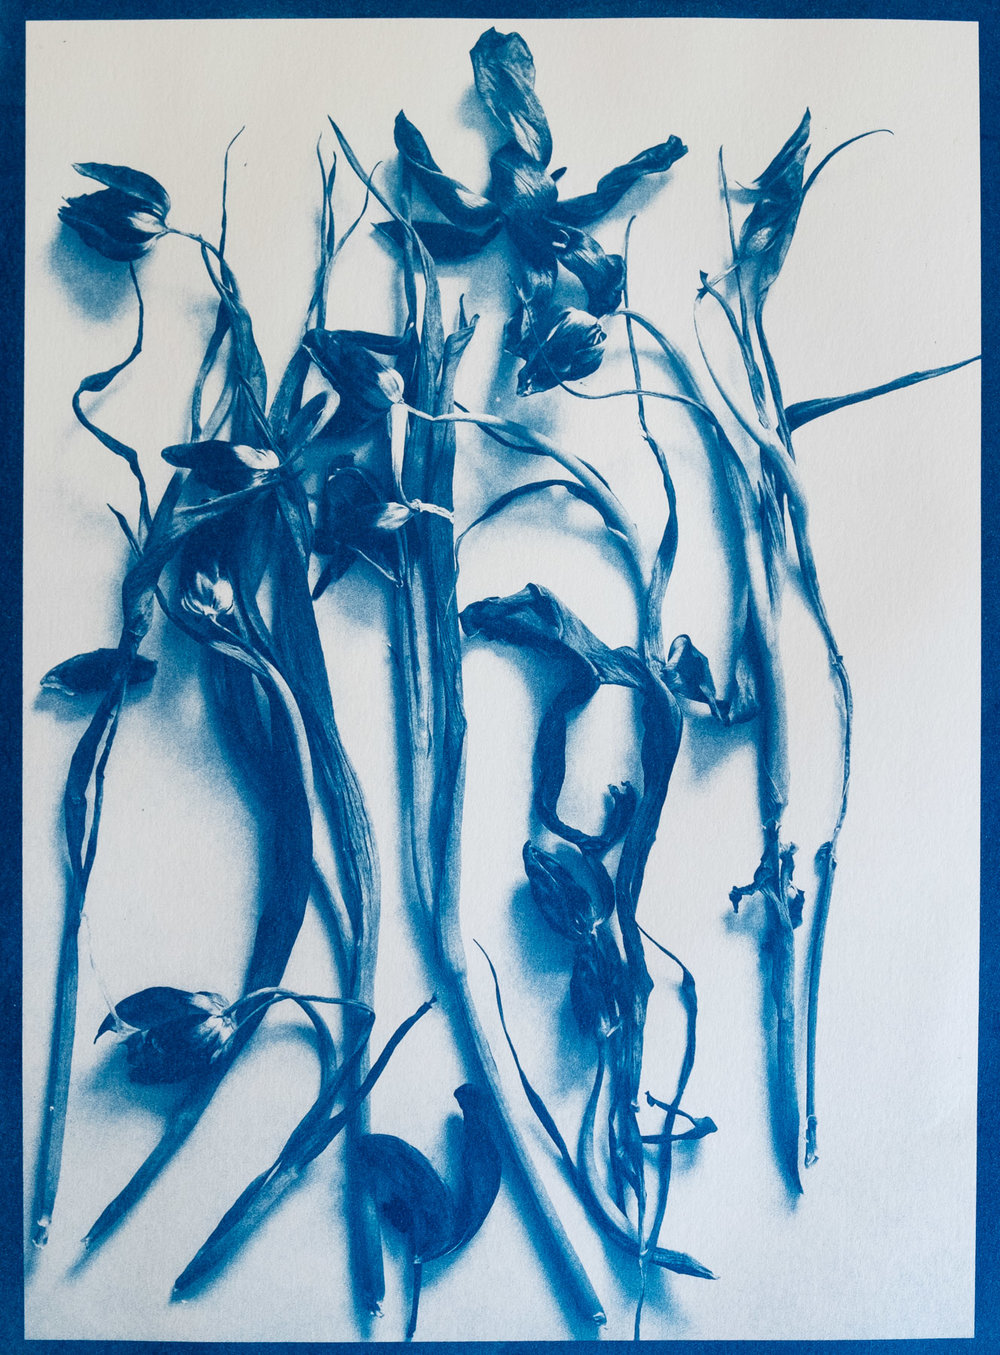 Tulipomania - Cyanotype #flowers #tulips #cyanotype